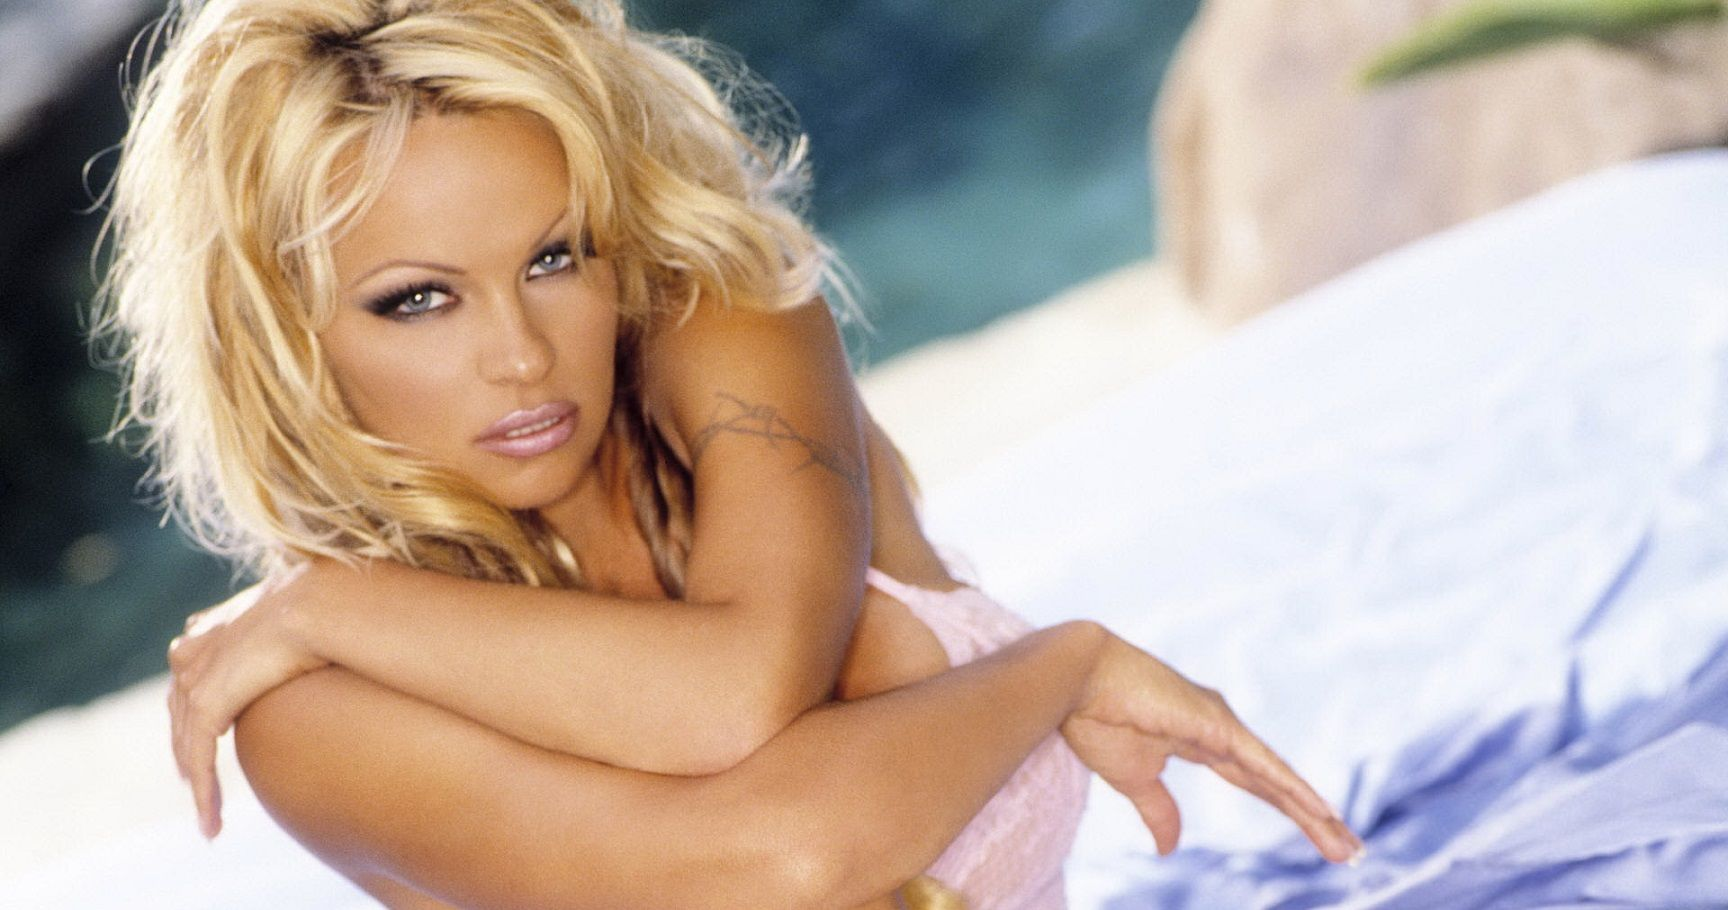 15 Most Beautiful Playboy Playmates Ever